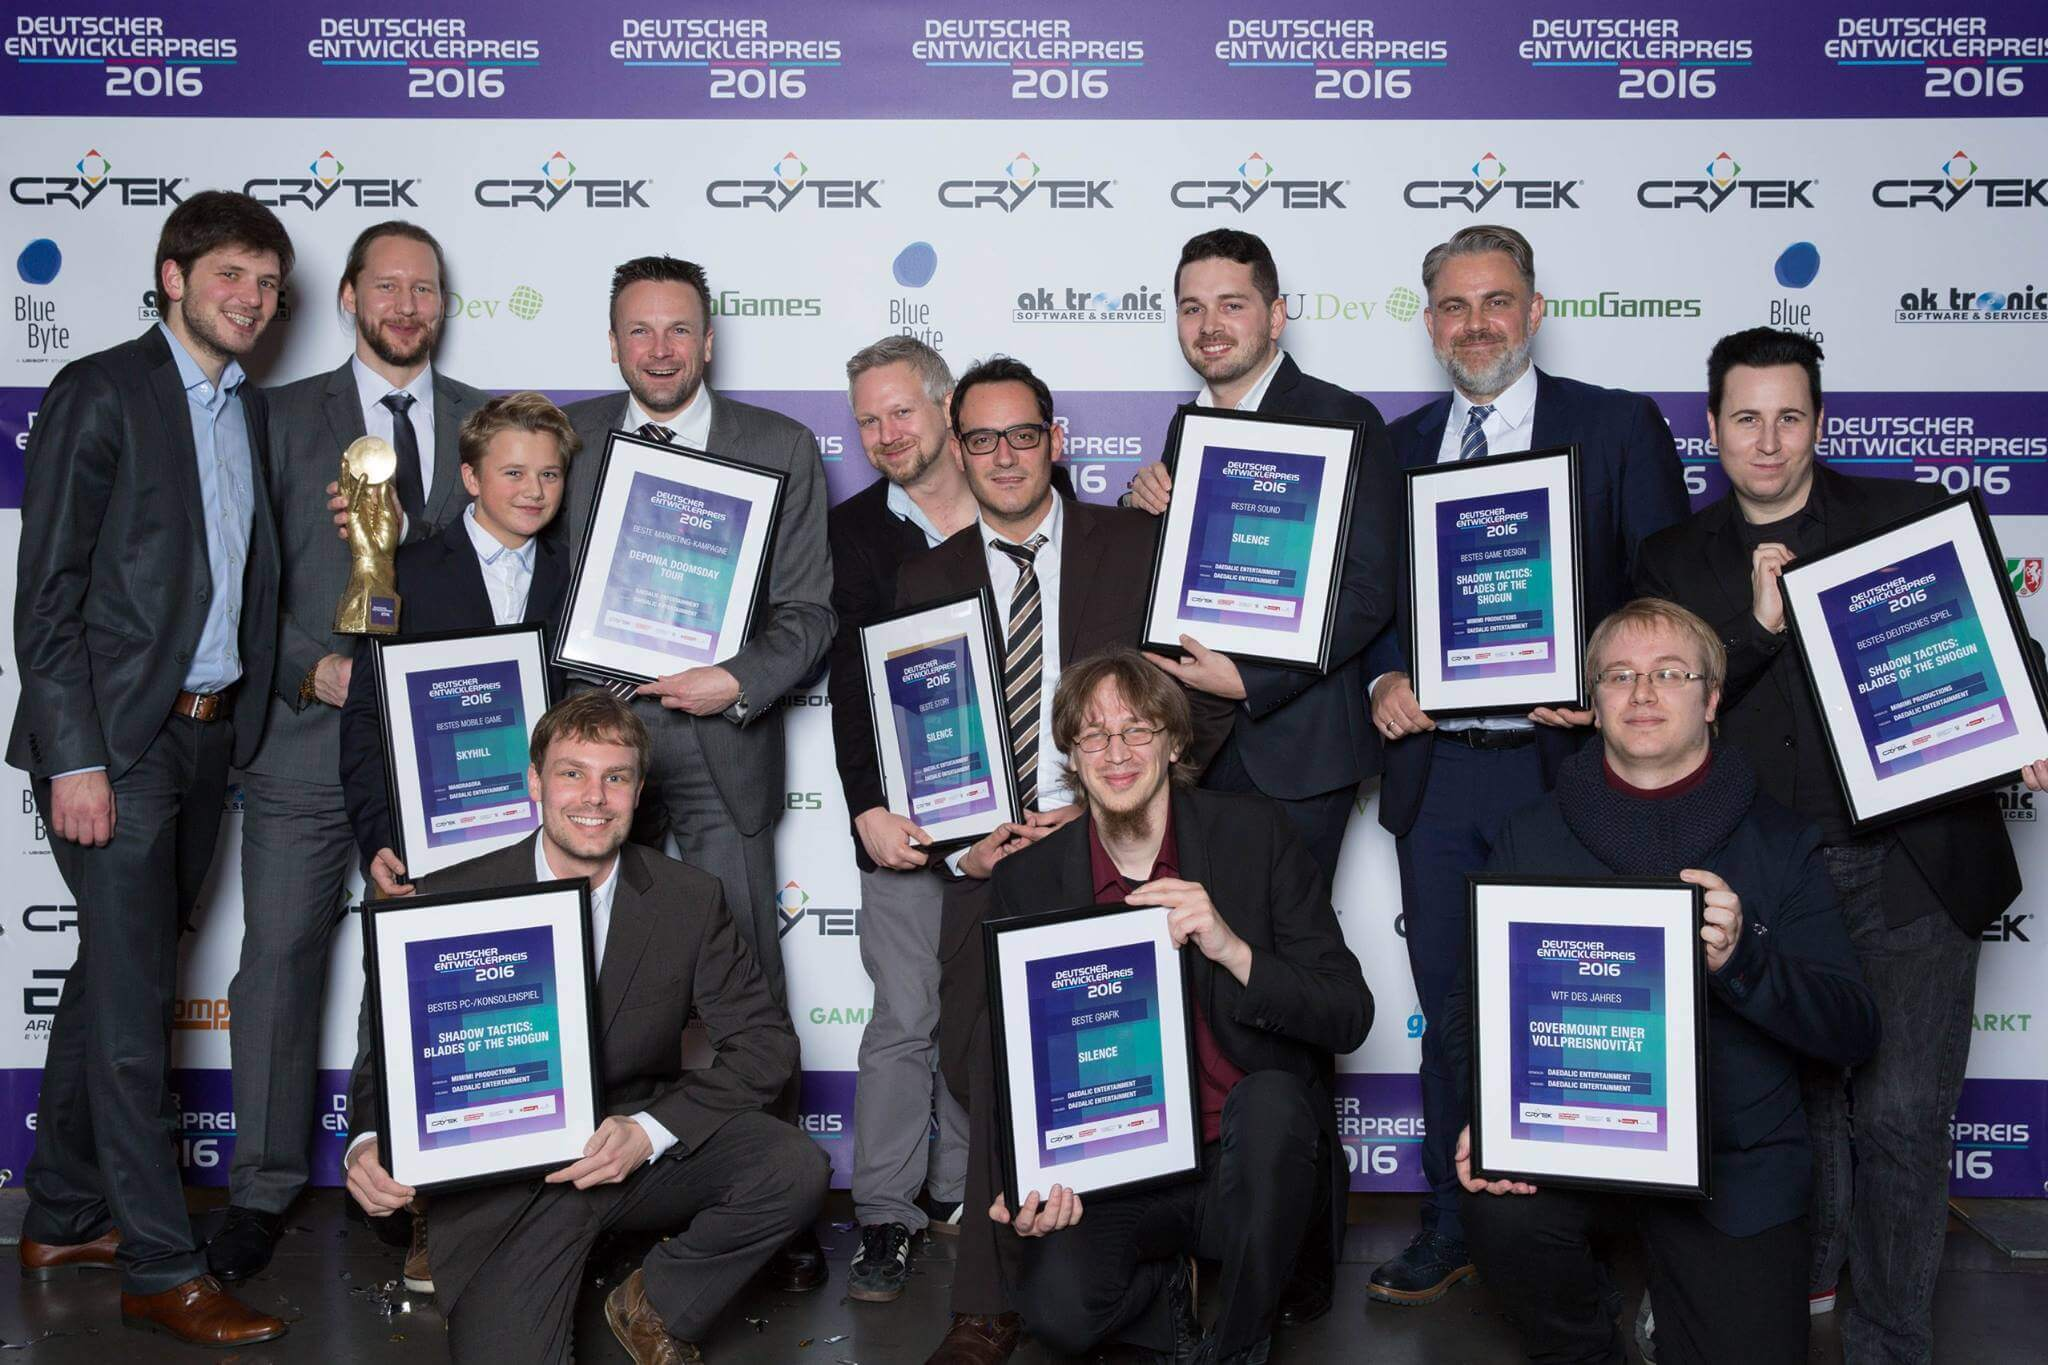 Grande successo di Daedelic Entertainment ai German Developer Awards